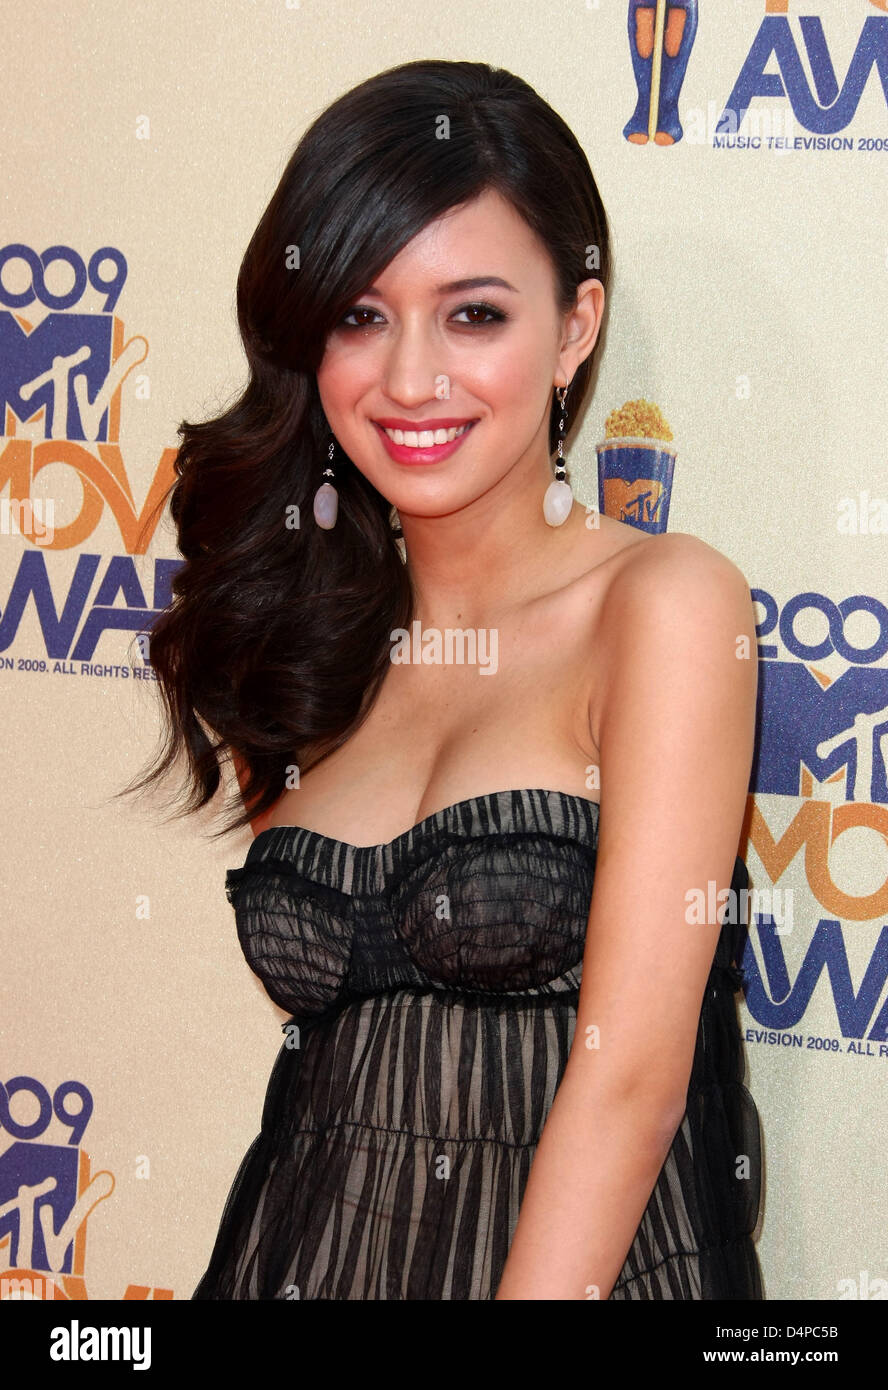 Celebrites Christian Serratos nudes (54 photos), Topless, Sideboobs, Instagram, bra 2019